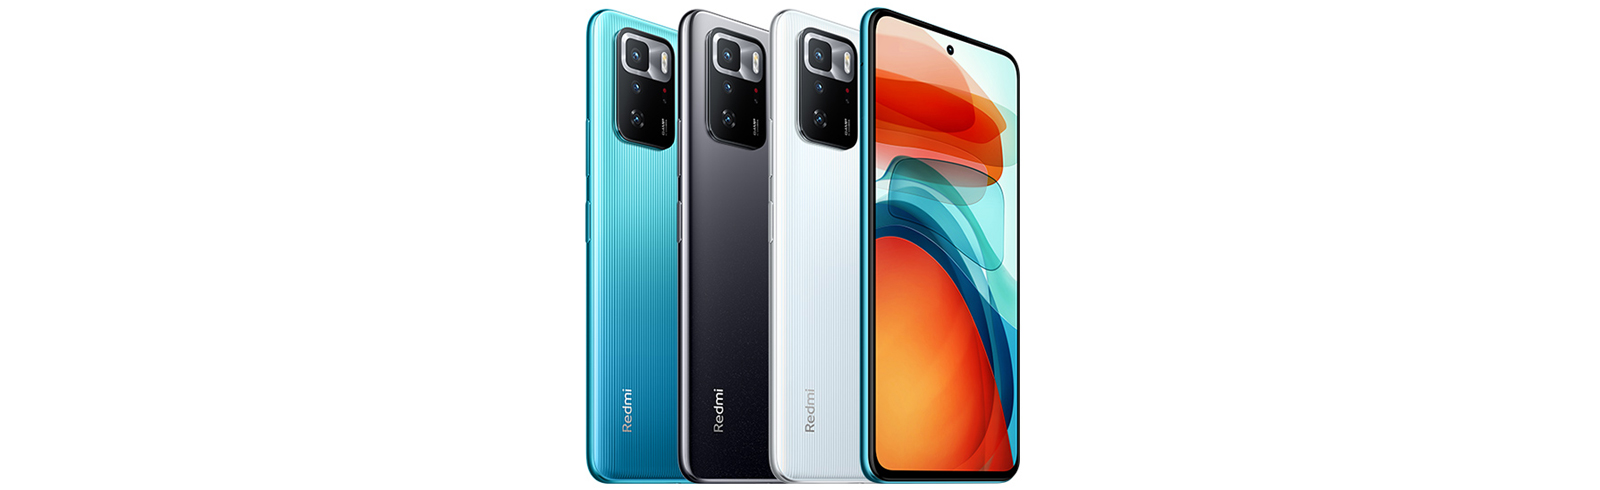 Xiaomi Redmi Note 10 Pro for China with Dimensity 1100 goes official - specifications and prices